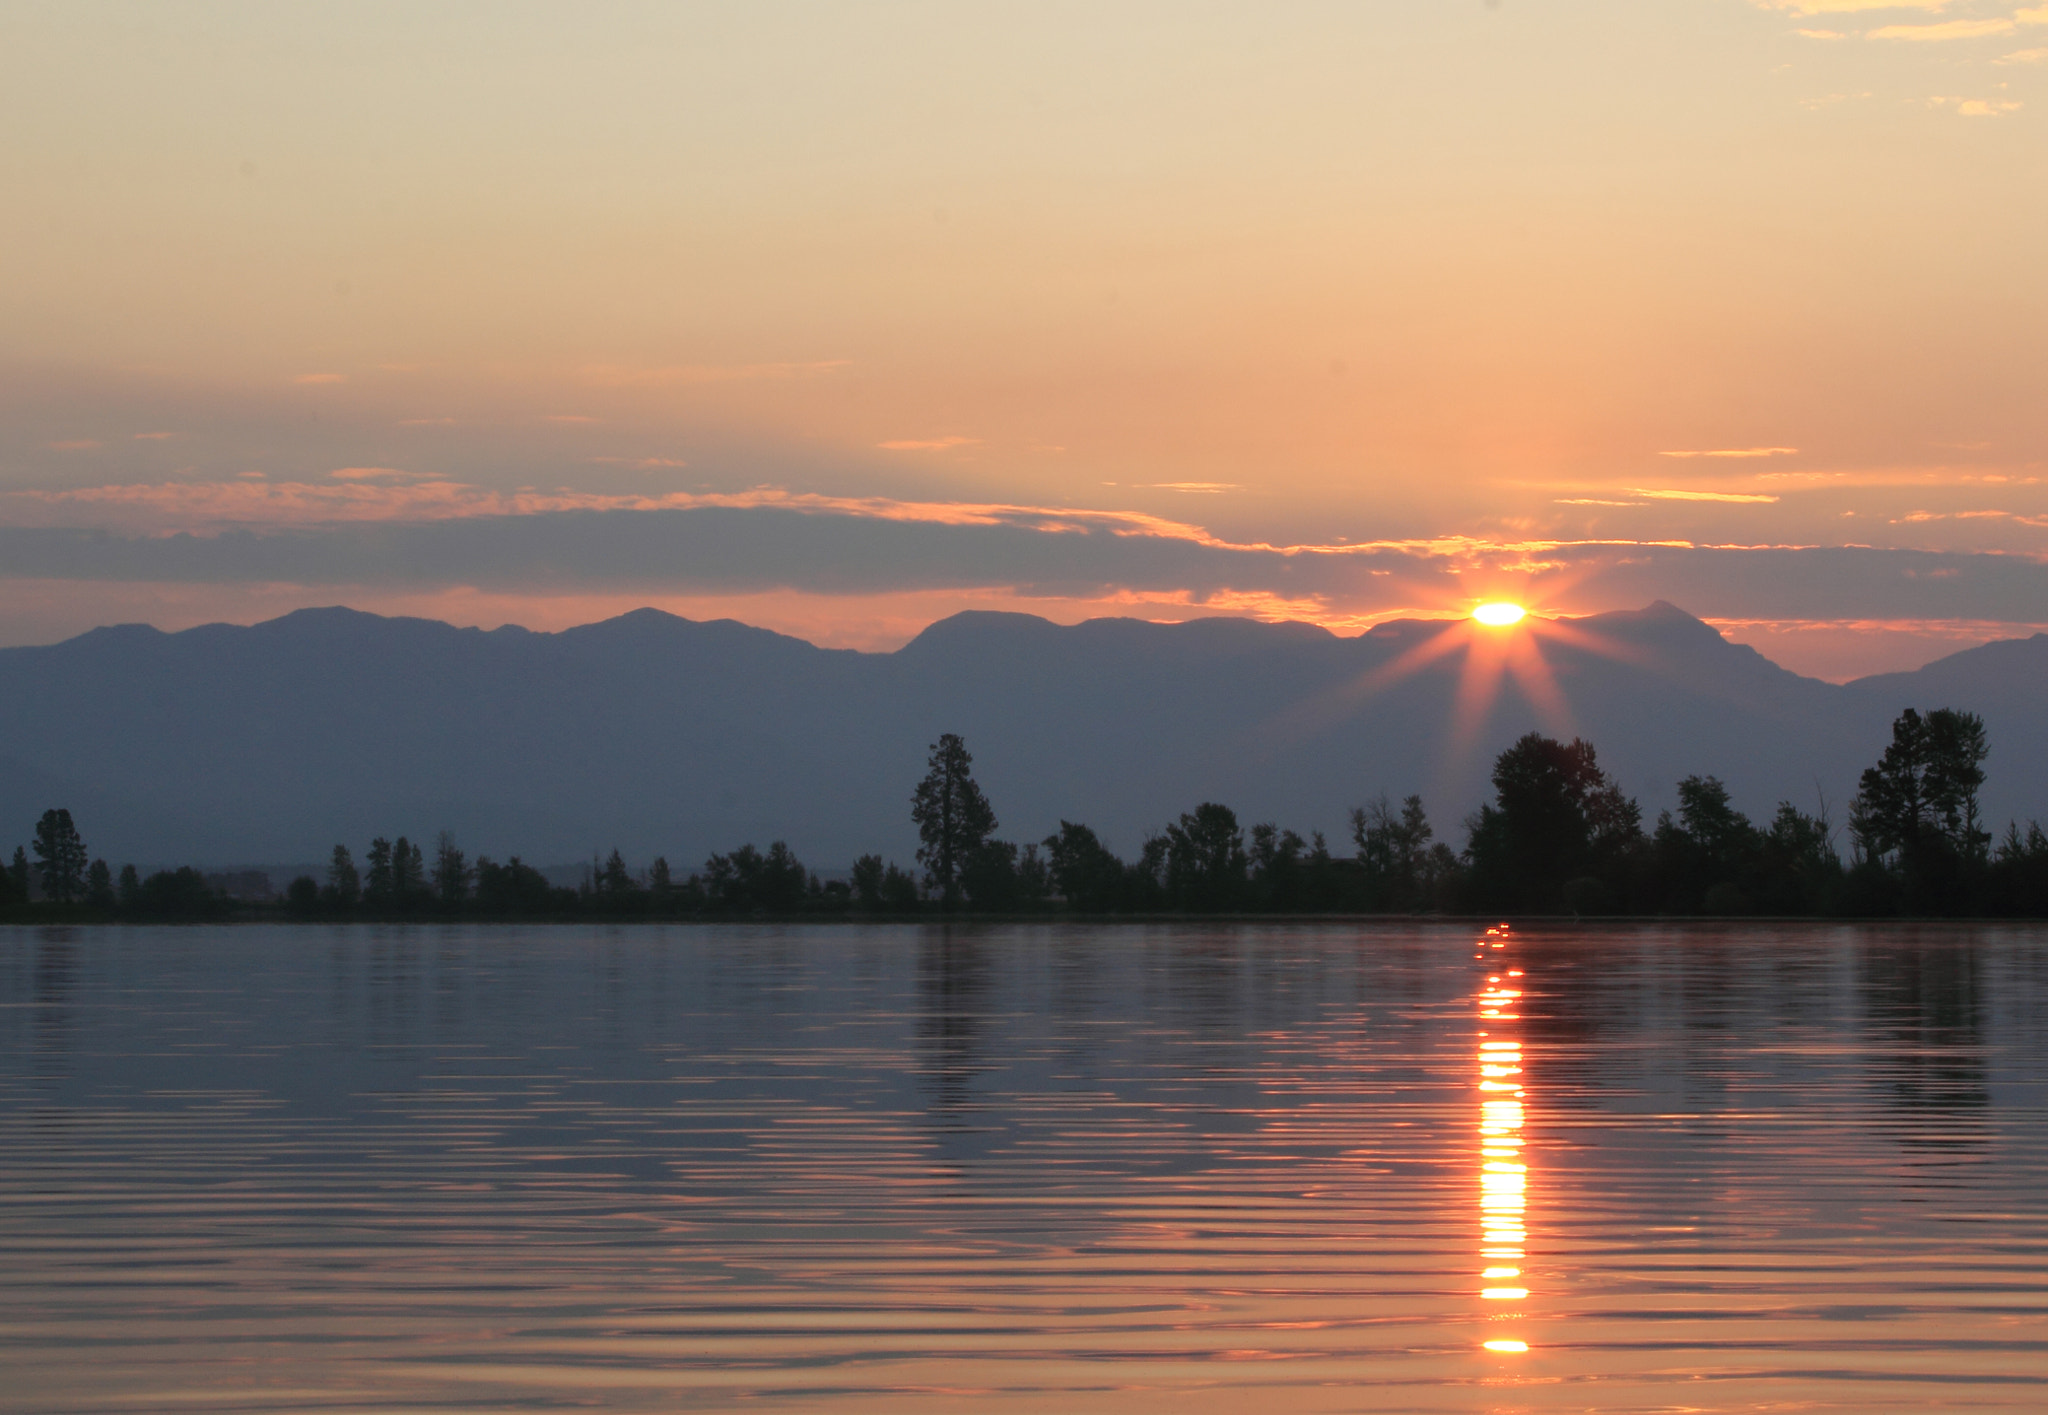 Photograph Sunrise on Flathead River by Rick Huntsman on 500px